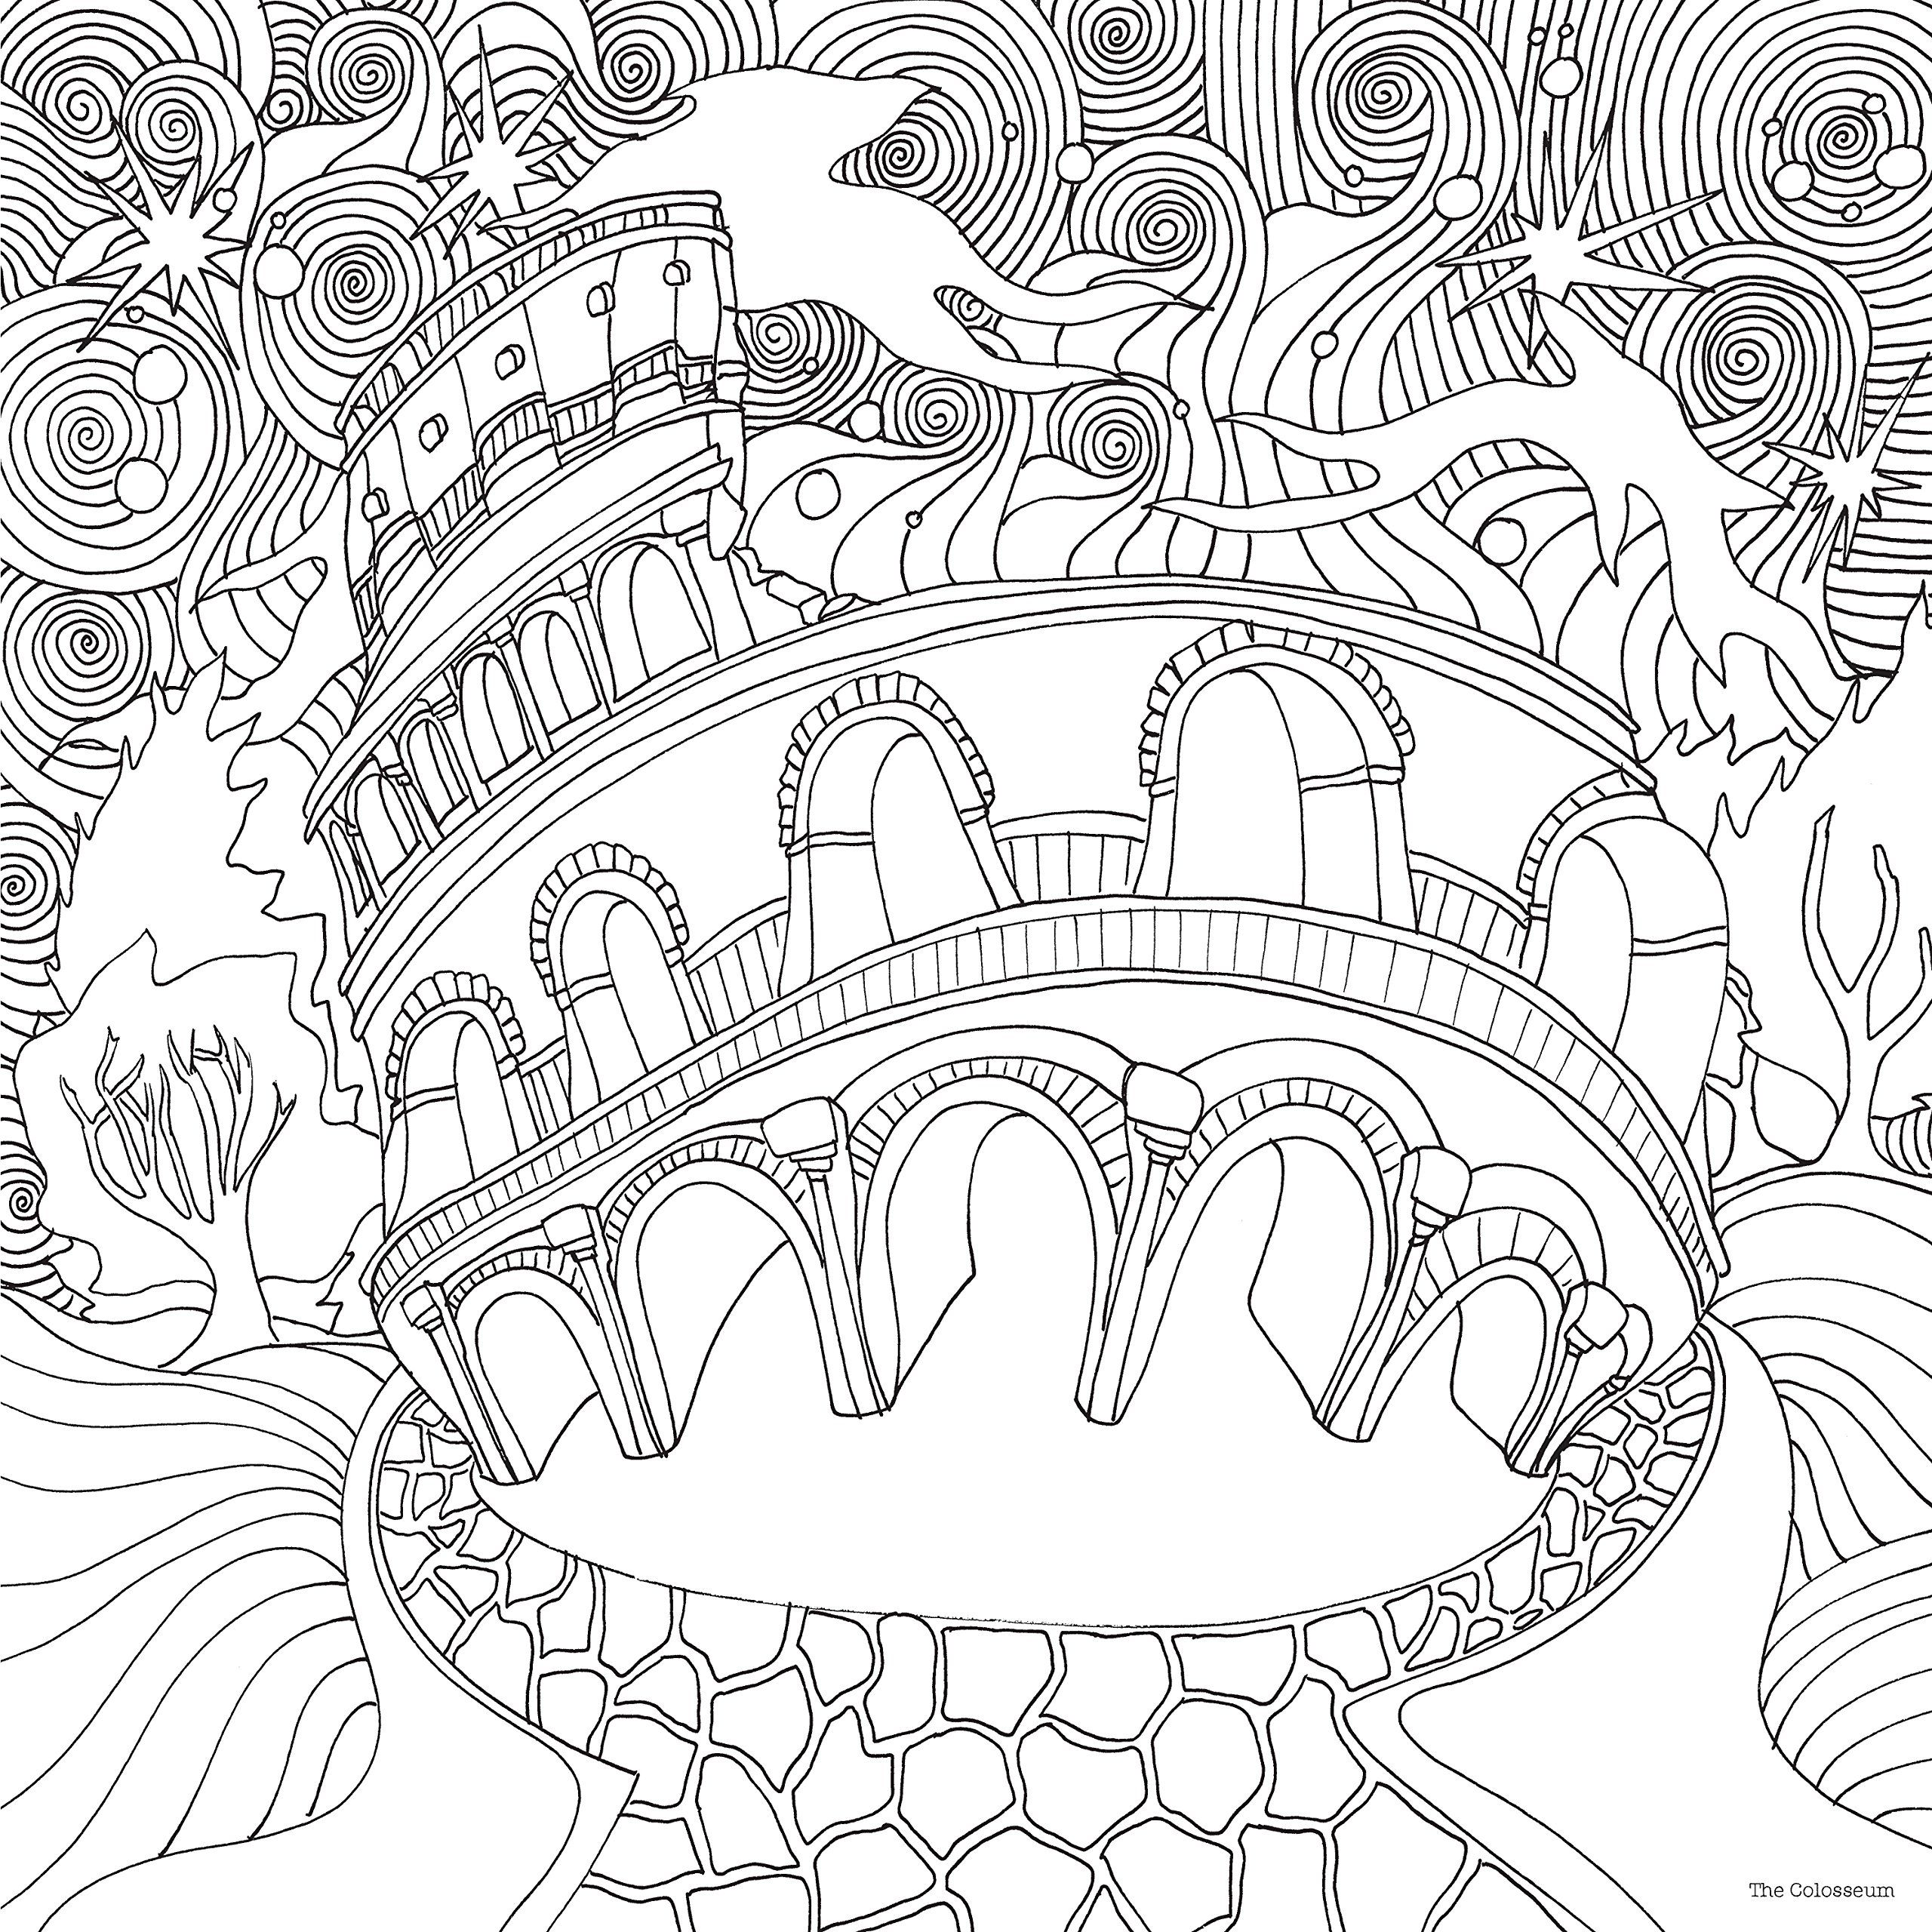 Co coloring book page template - The Magical City Magical Colouring Books For Adults Amazon Co Uk